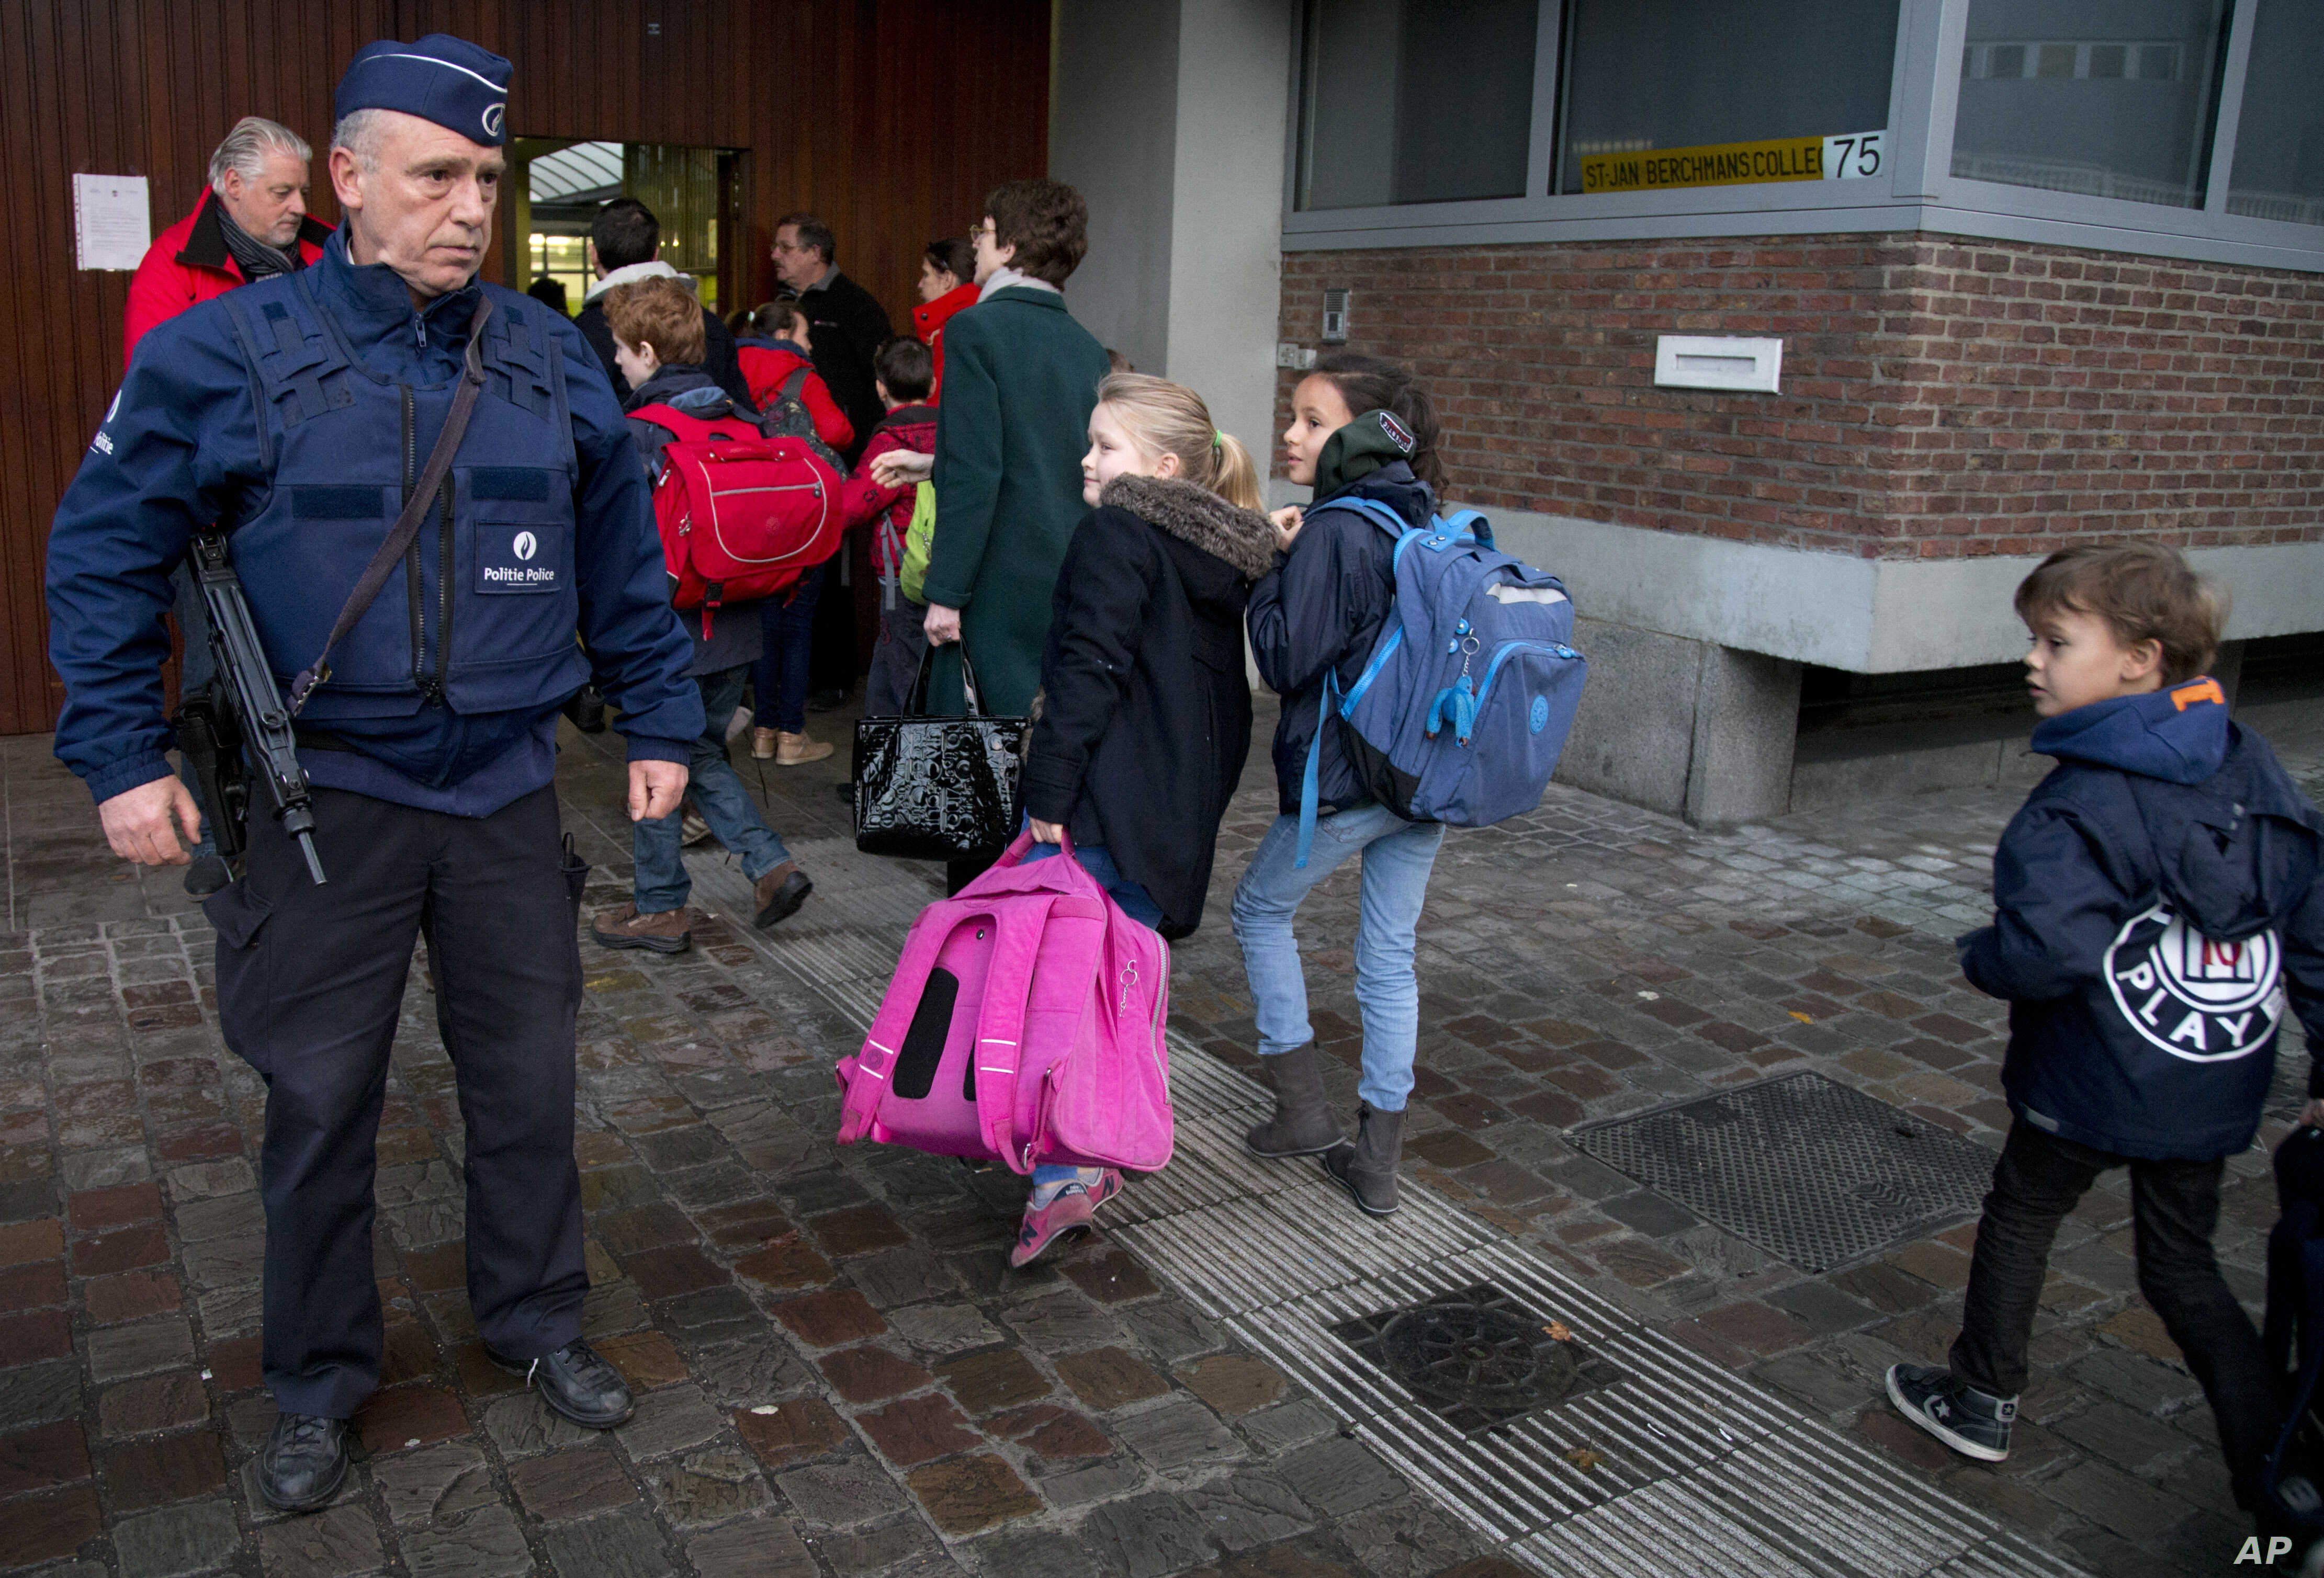 Children pass a police officer as they arrive for school in the center of Brussels, Nov. 25, 2015.